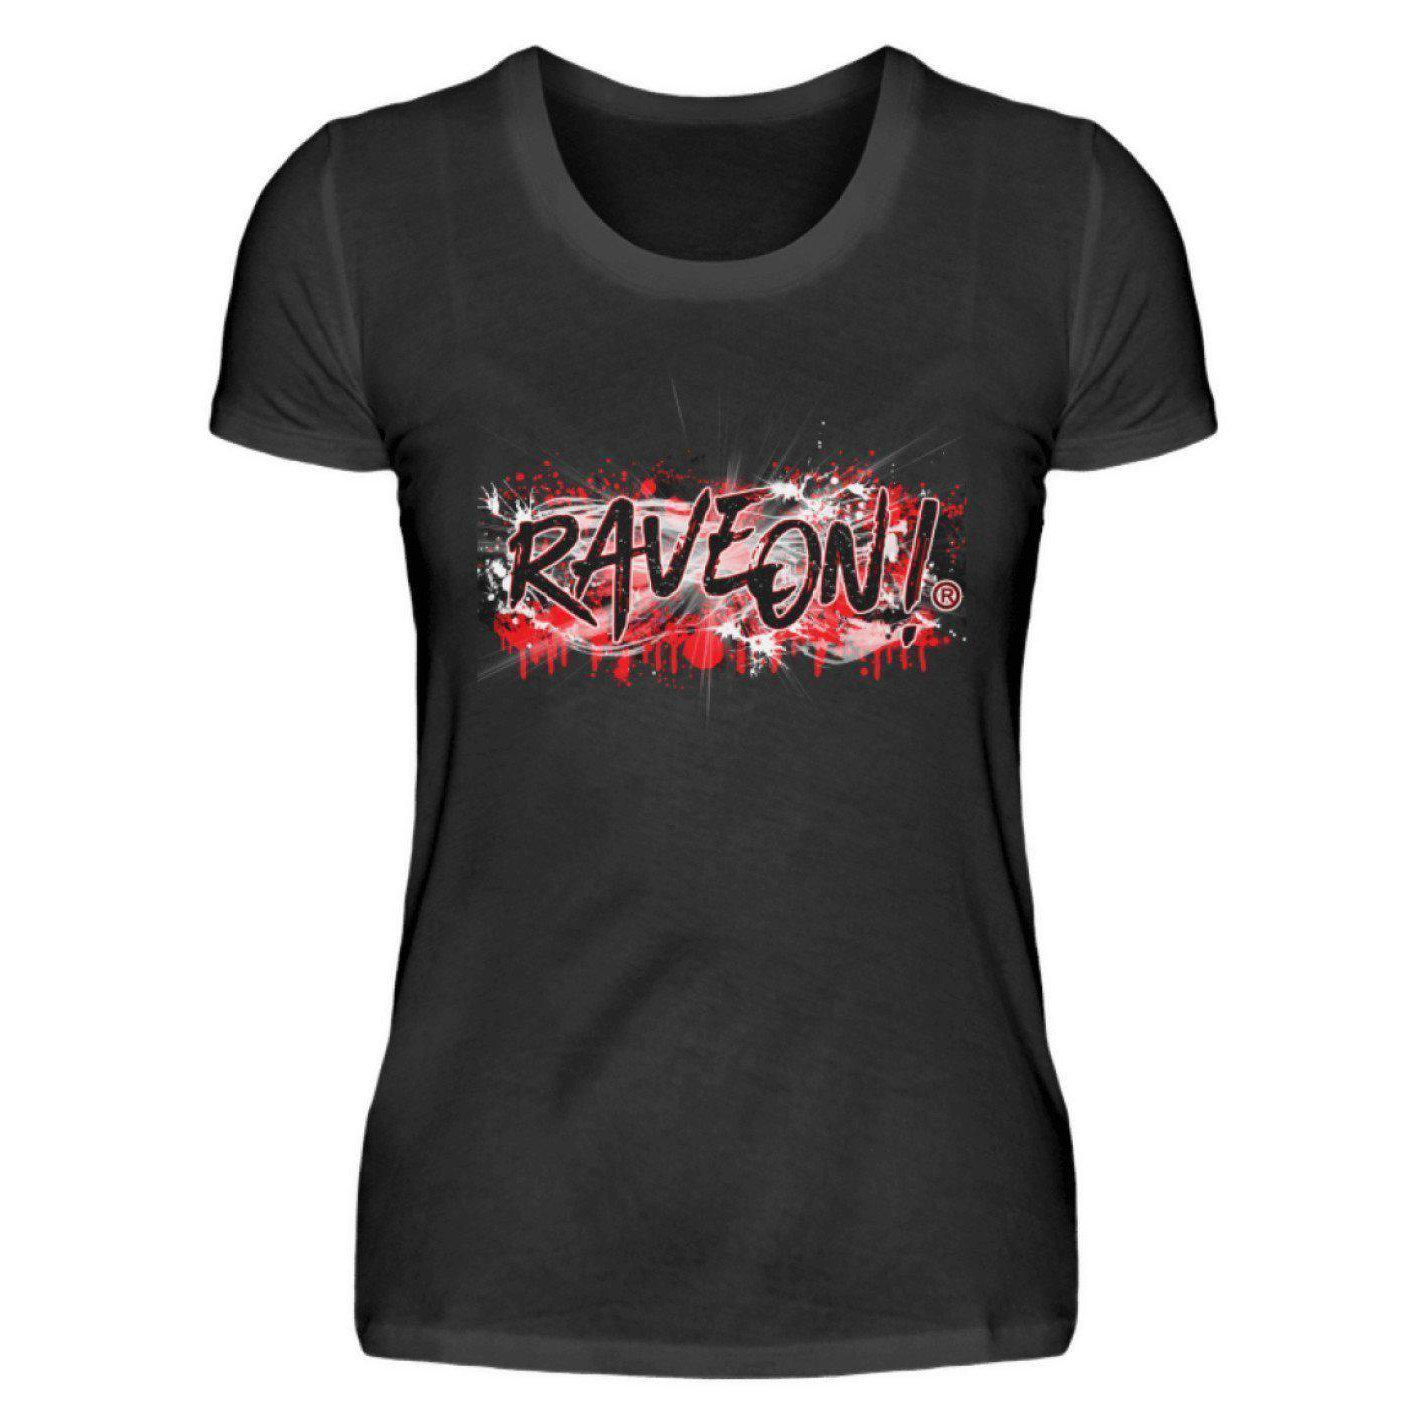 Rave On!® Bloody Graffity - Ladies Shirt Ladies Basic T-Shirt Black / S - Rave On!® the club & techno scene shop for cool young fashion streetwear style & fashion outfits + sexy festival 420 stuff